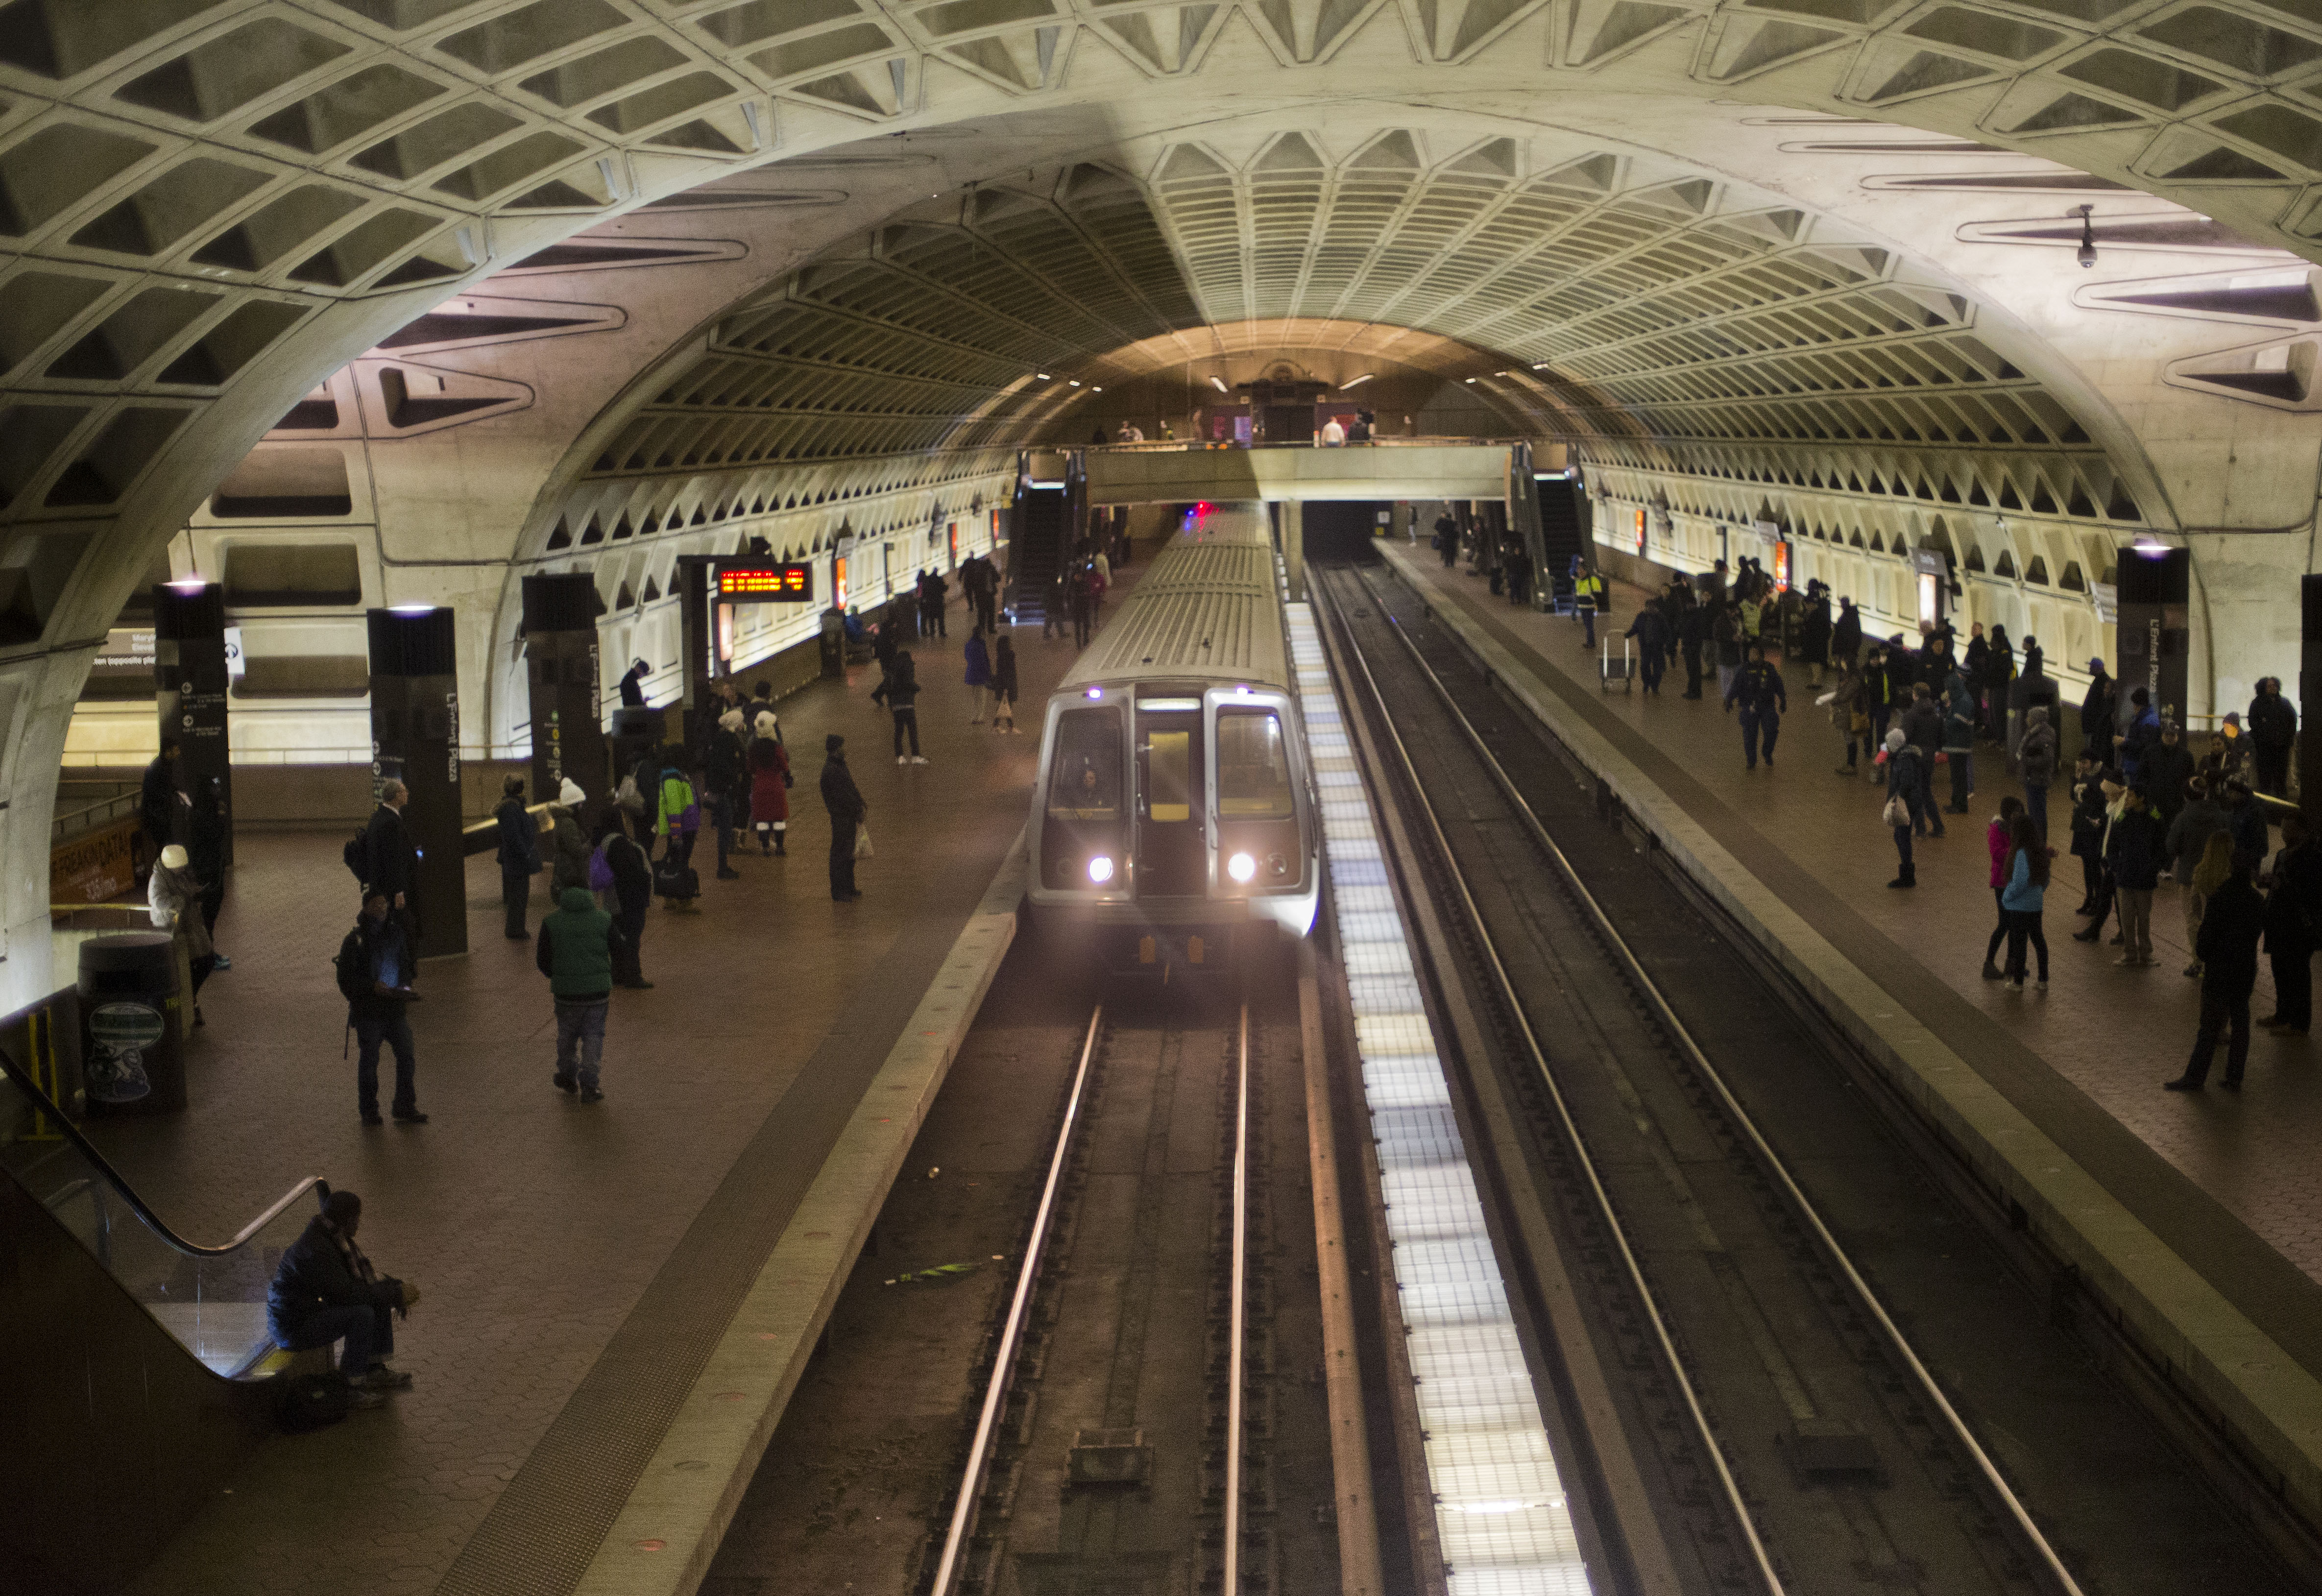 Metro official: Safety program has 'gaping hole'